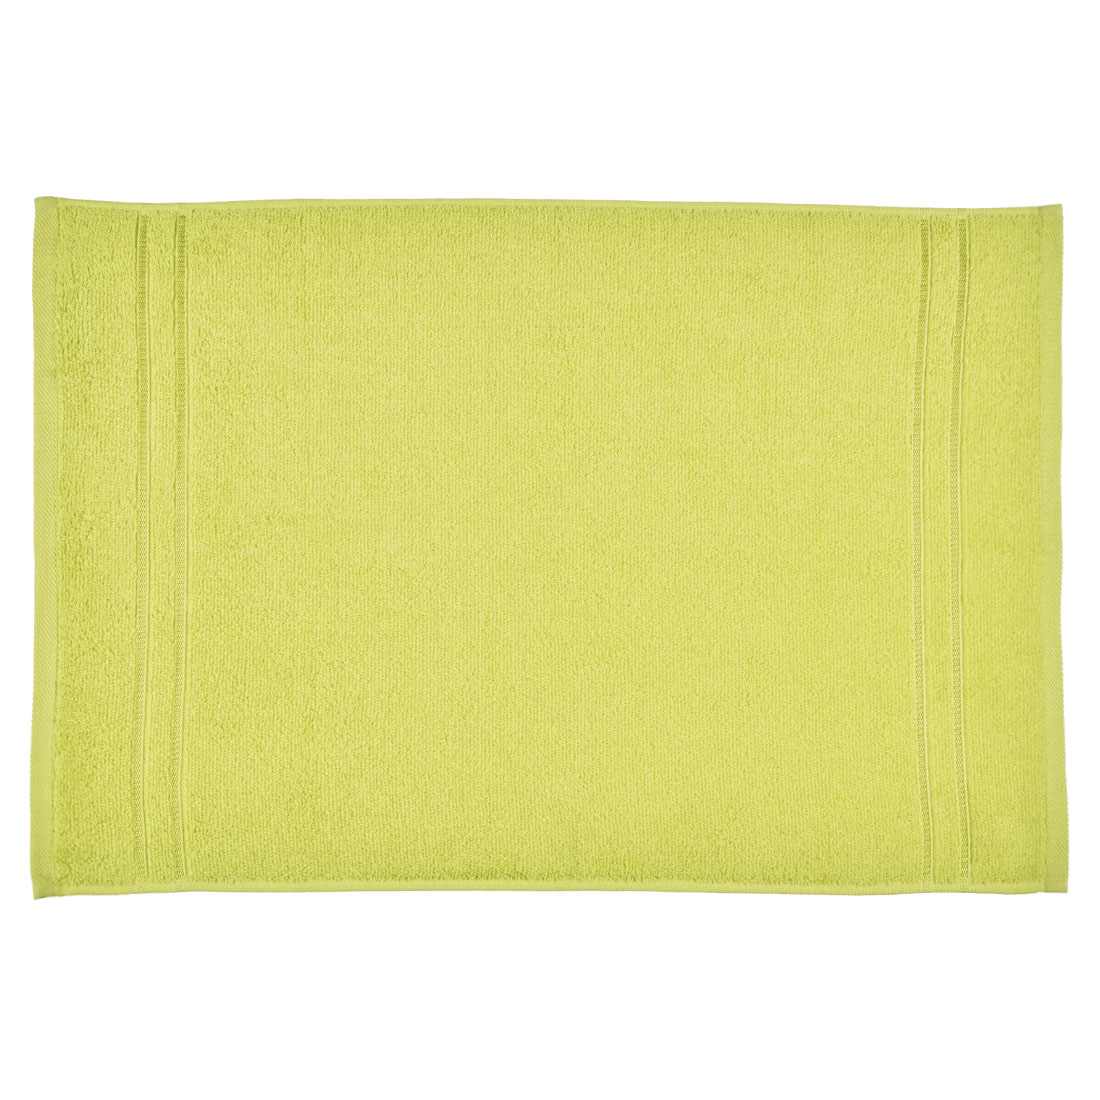 Hand Towel Nora Citron Cotton Hand Towels in Cotton Colour by Living Essence